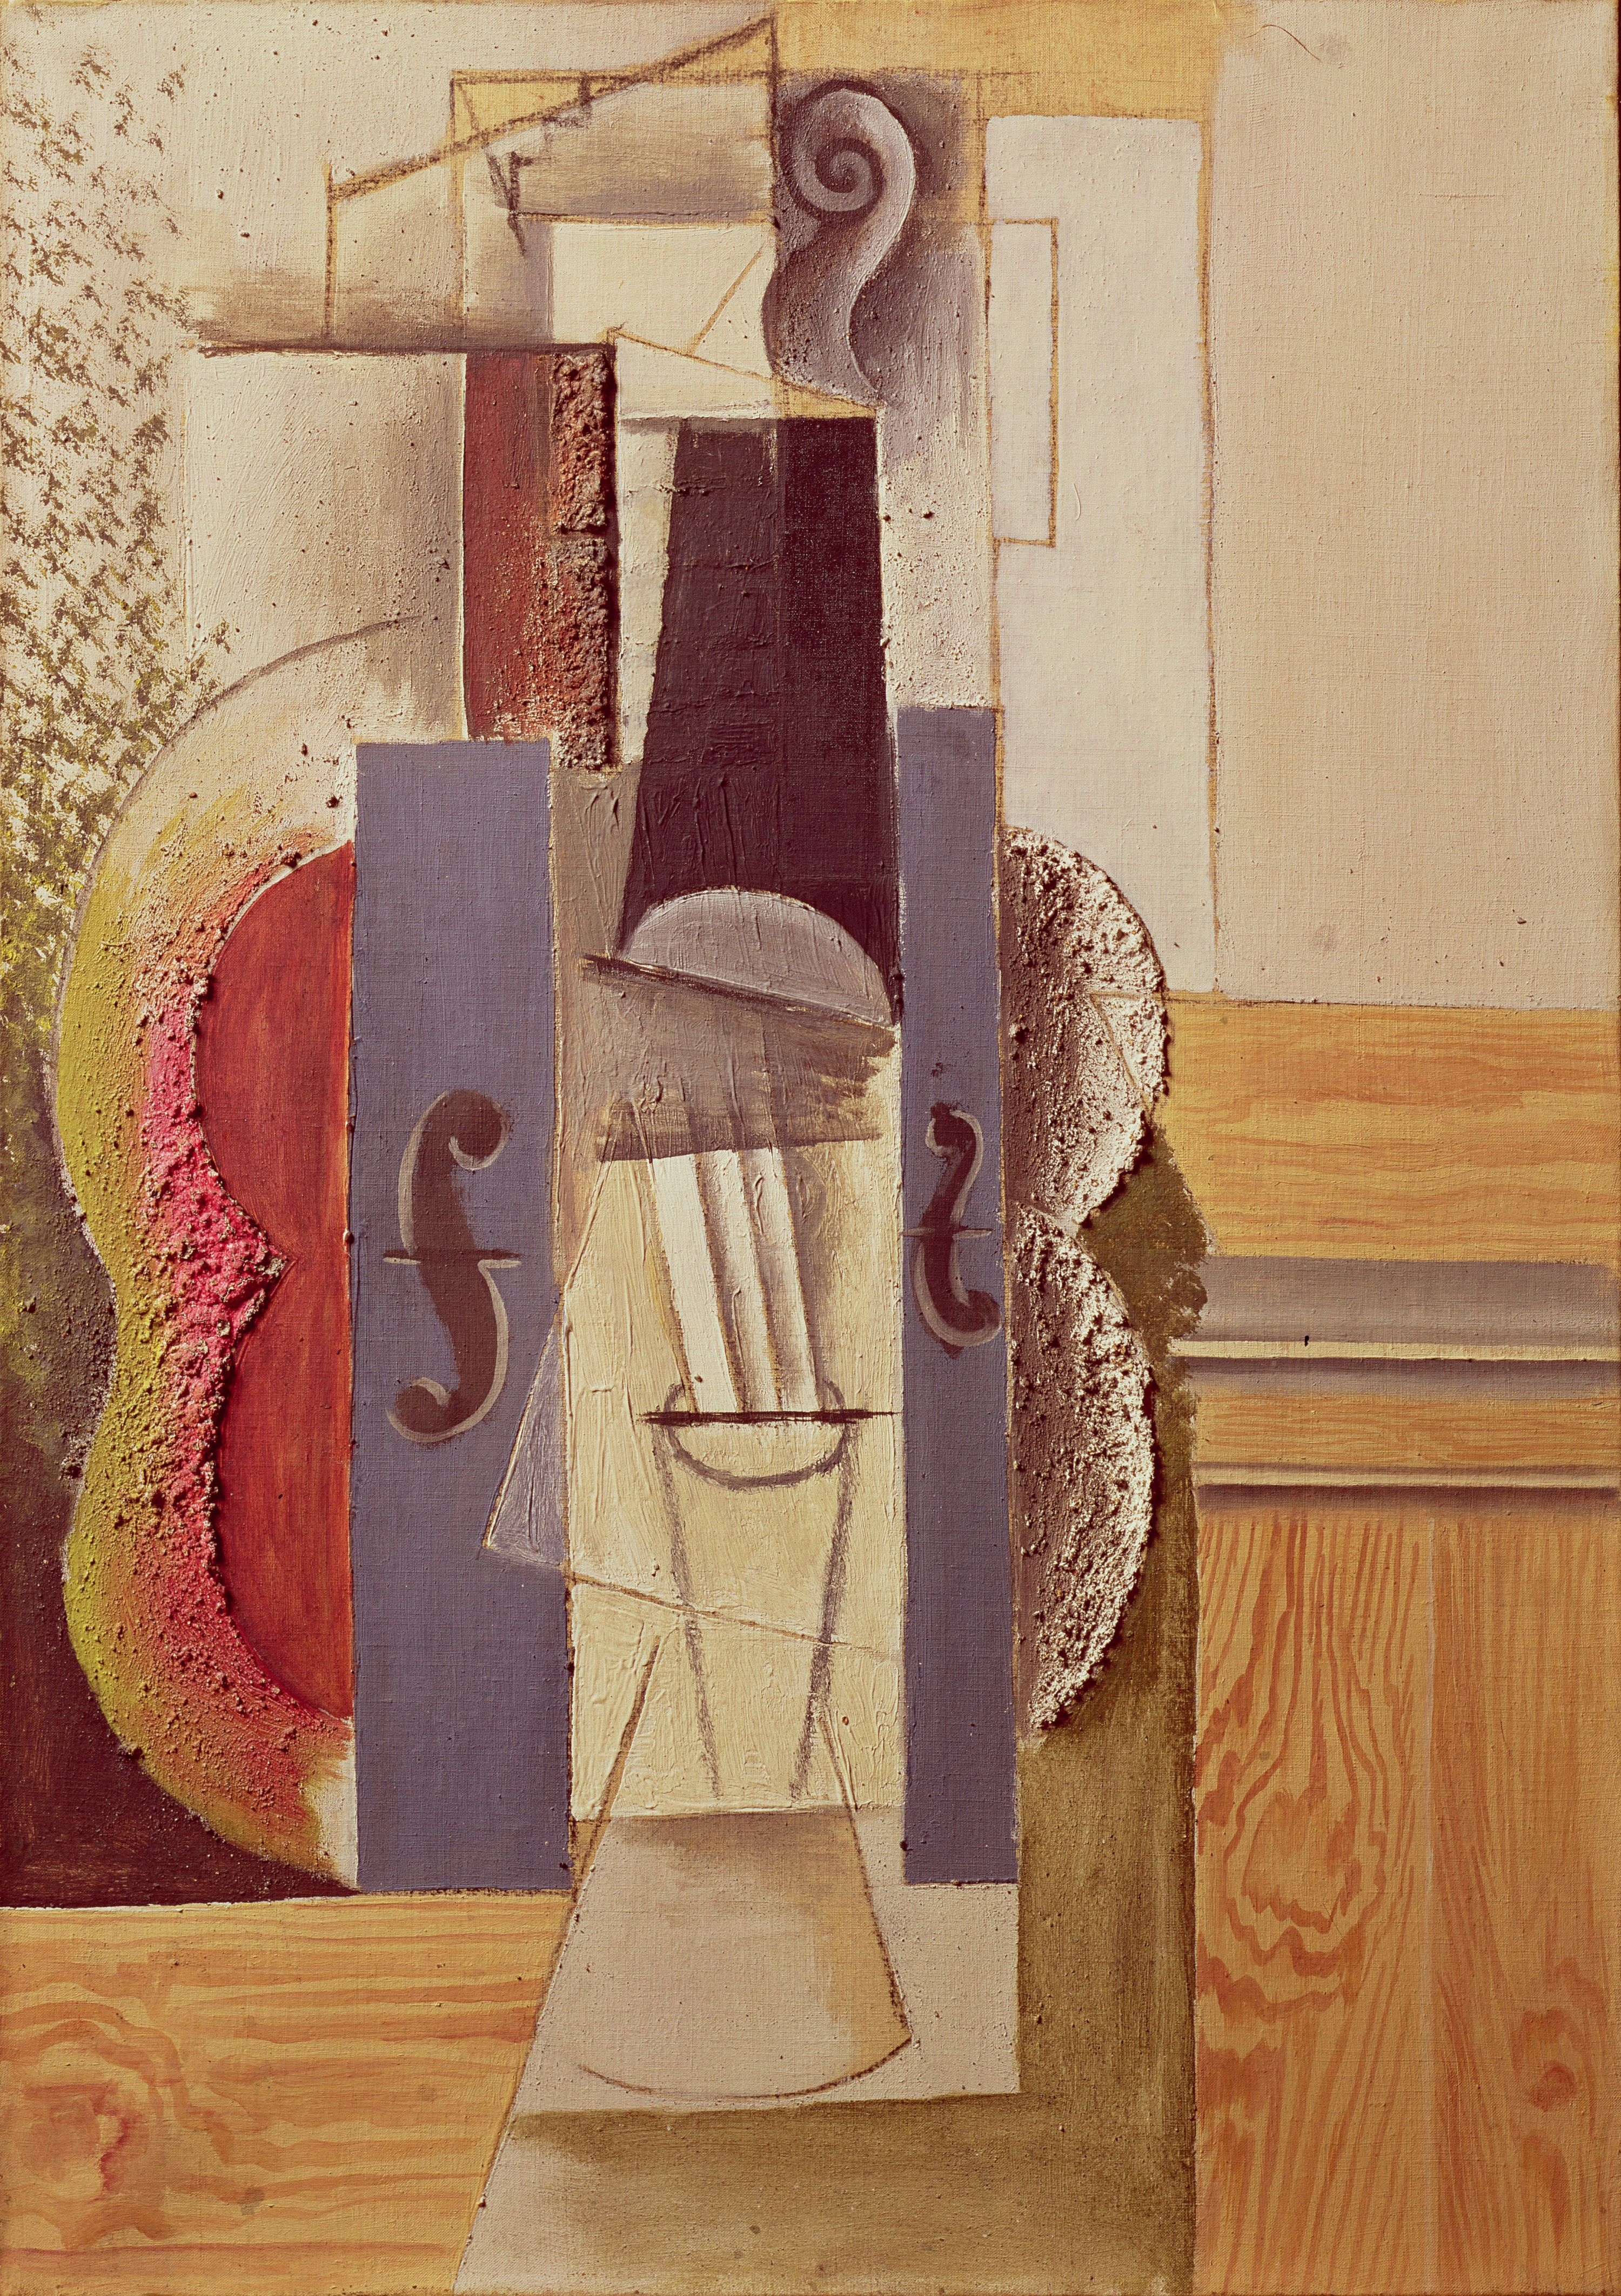 Pablo Picasso, Violin Hanging on the Wall (1912-13)